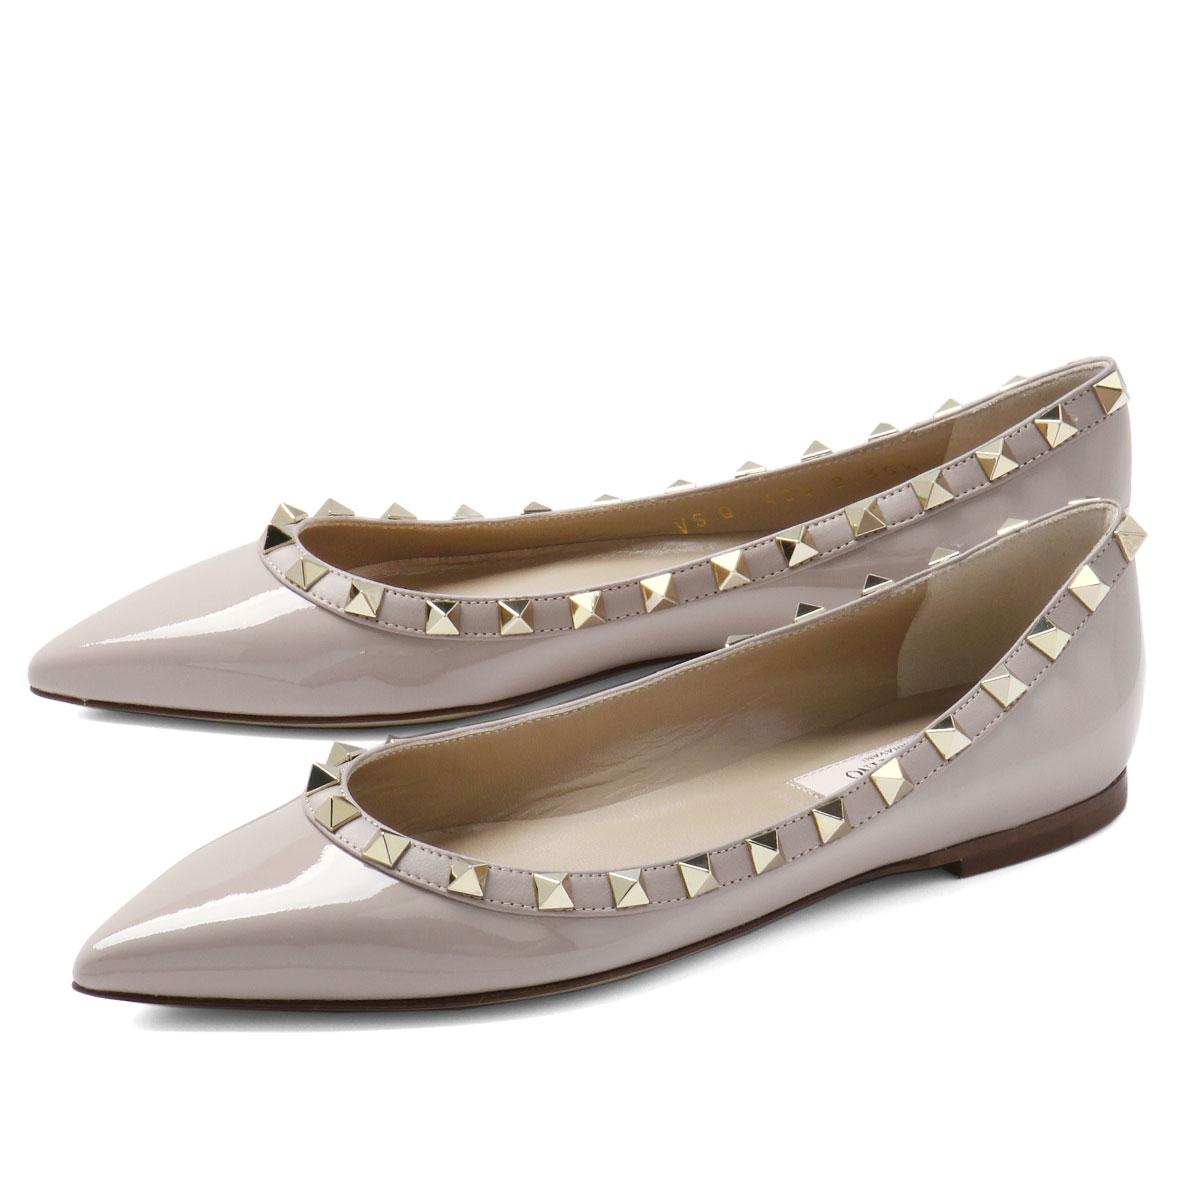 bcca20b81d509c importshopdouble: Valentino VALENTINO shoes Lady's QW2S0403 VNW P45 pointed  toe ballet shoes ROCKSTUD lock stud bolt POUDRE/P is beige | Rakuten Global  ...